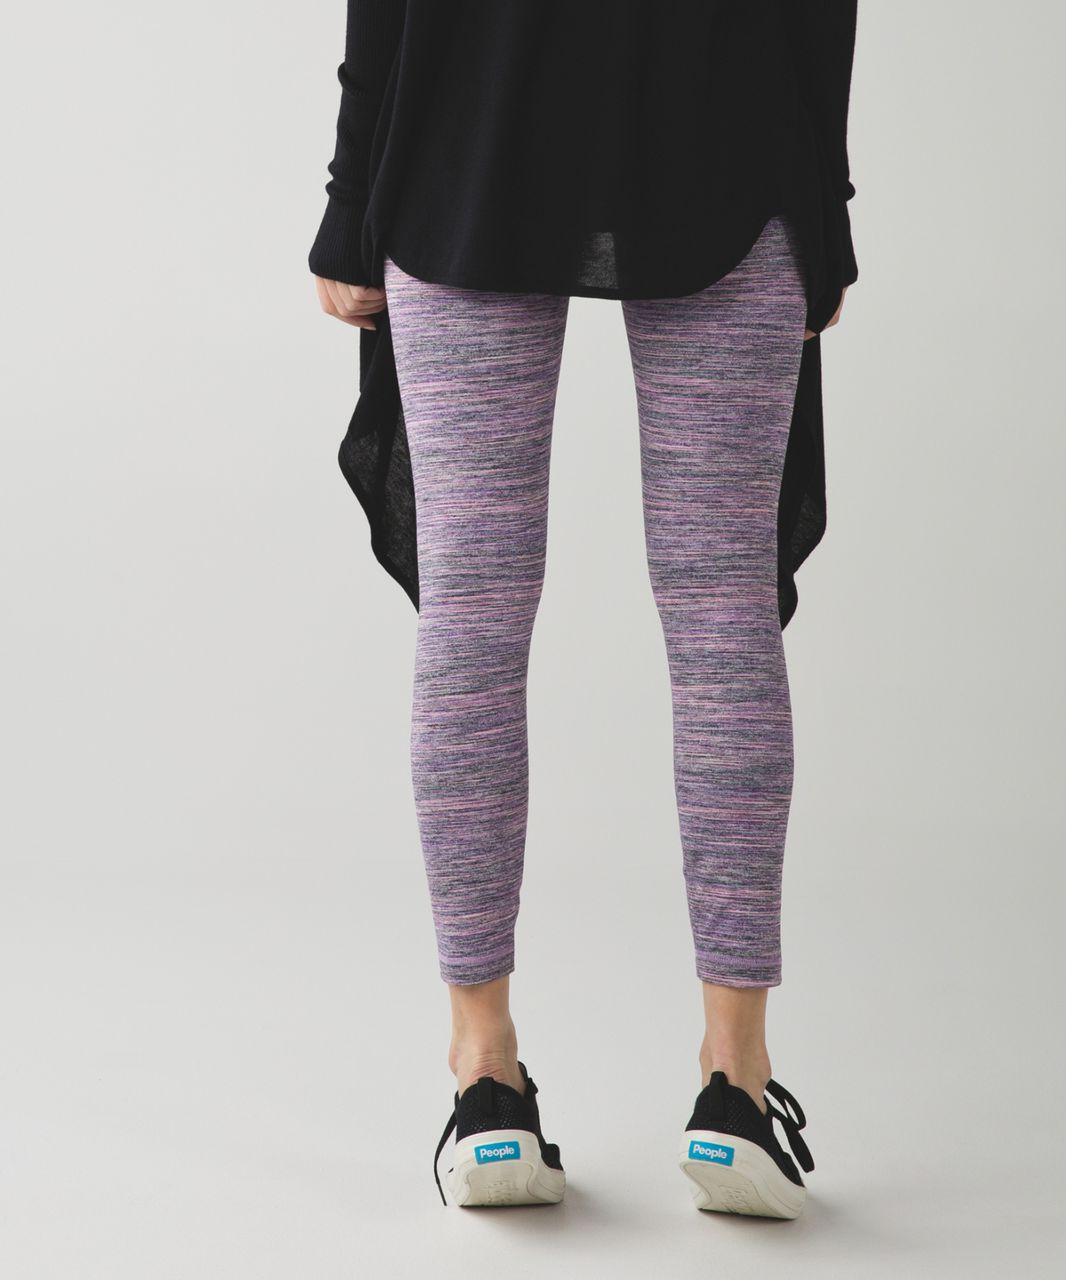 Lululemon High Times Pant - Space Dye Camo Tender Violet Black Grape